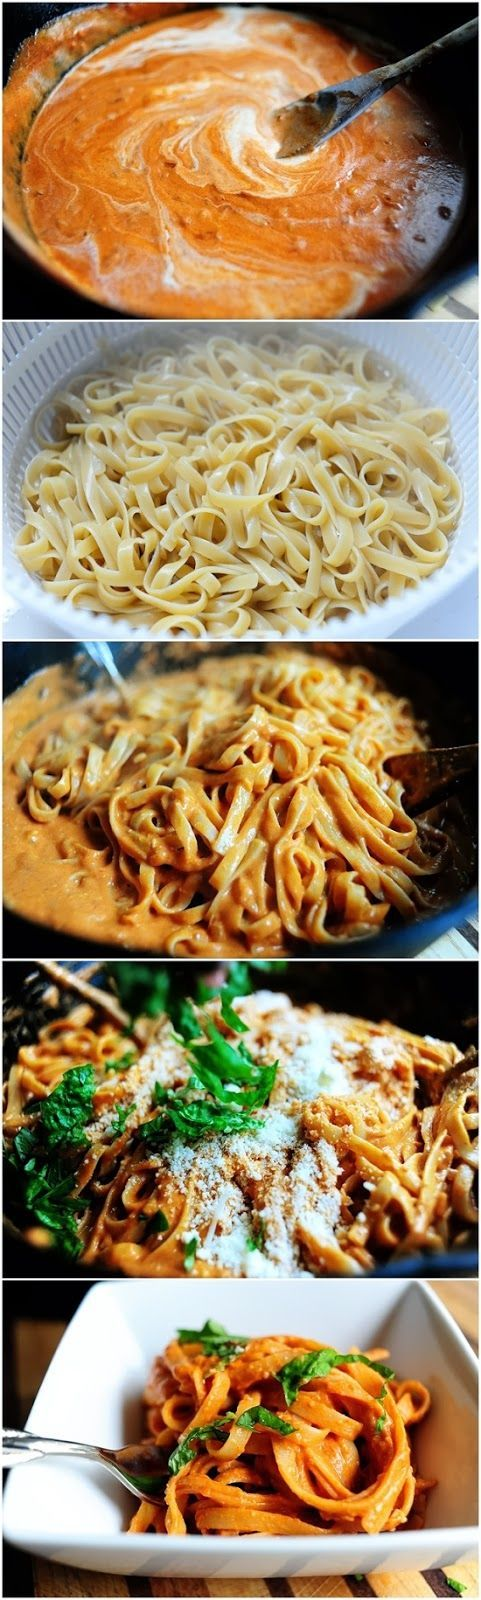 Pasta with Tomato Cream Sauce ~~ There's really nothing better in the entire world than a fresh thick sauce for pasta. Of course you can use a jar of sauce bought in a store, but the homemade one is also as easy. Plus benefits: you can add extra ingredients you like to your own pasta